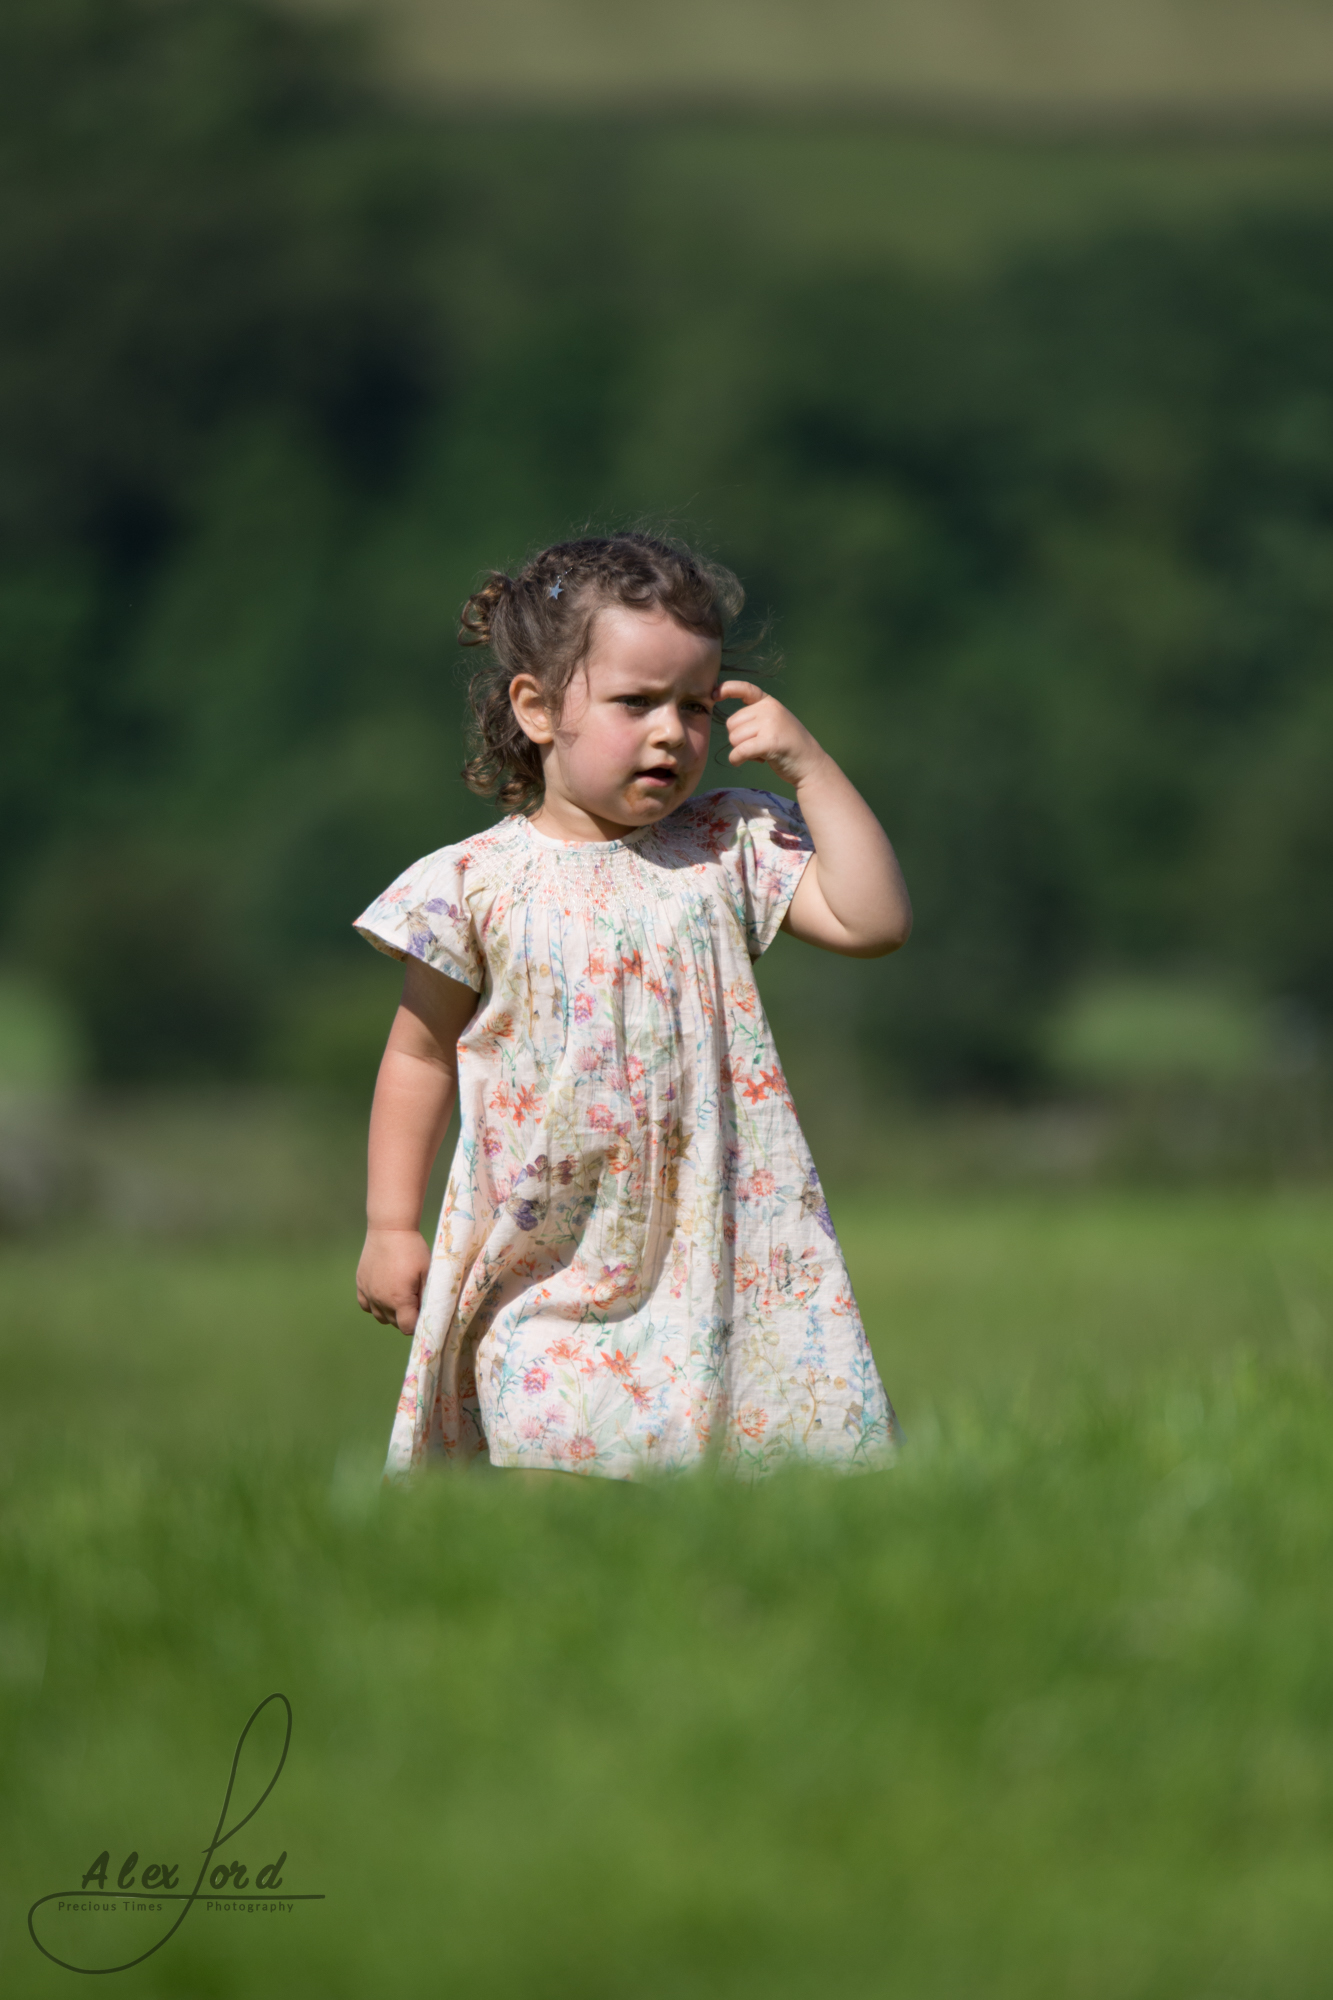 A young girl wedding guest plays in long grass at the Yorkshire wedding venue